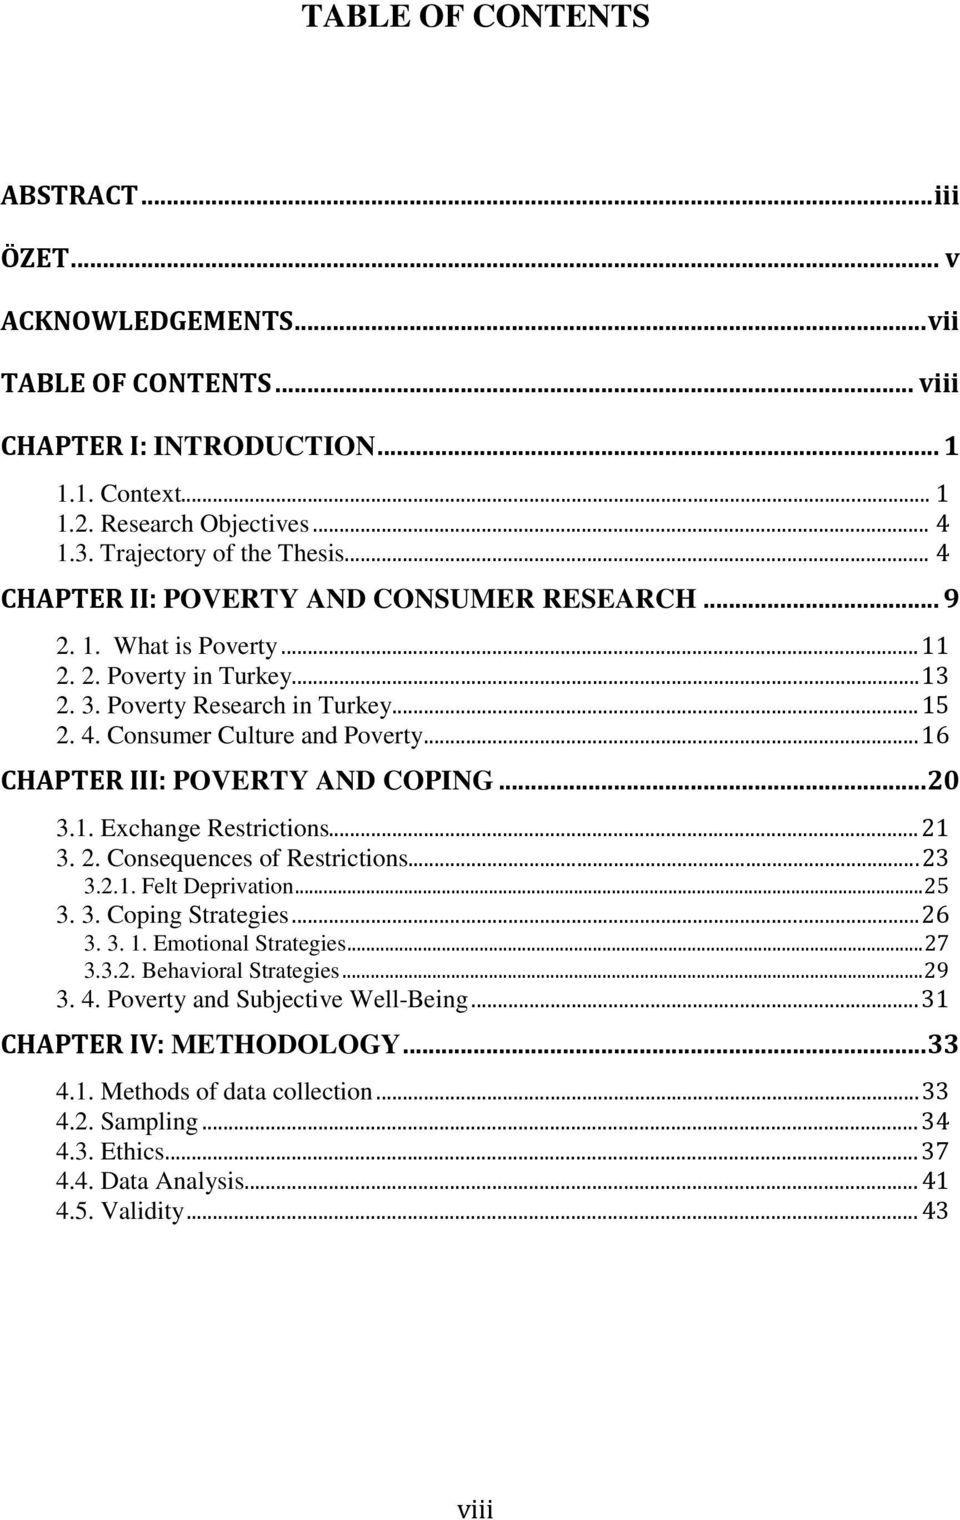 .. 16 CHAPTER III: POVERTY AND COPING... 20 3.1. Exchange Restrictions... 21 3. 2. Consequences of Restrictions... 23 3.2.1. Felt Deprivation... 25 3. 3. Coping Strategies... 26 3. 3. 1. Emotional Strategies.